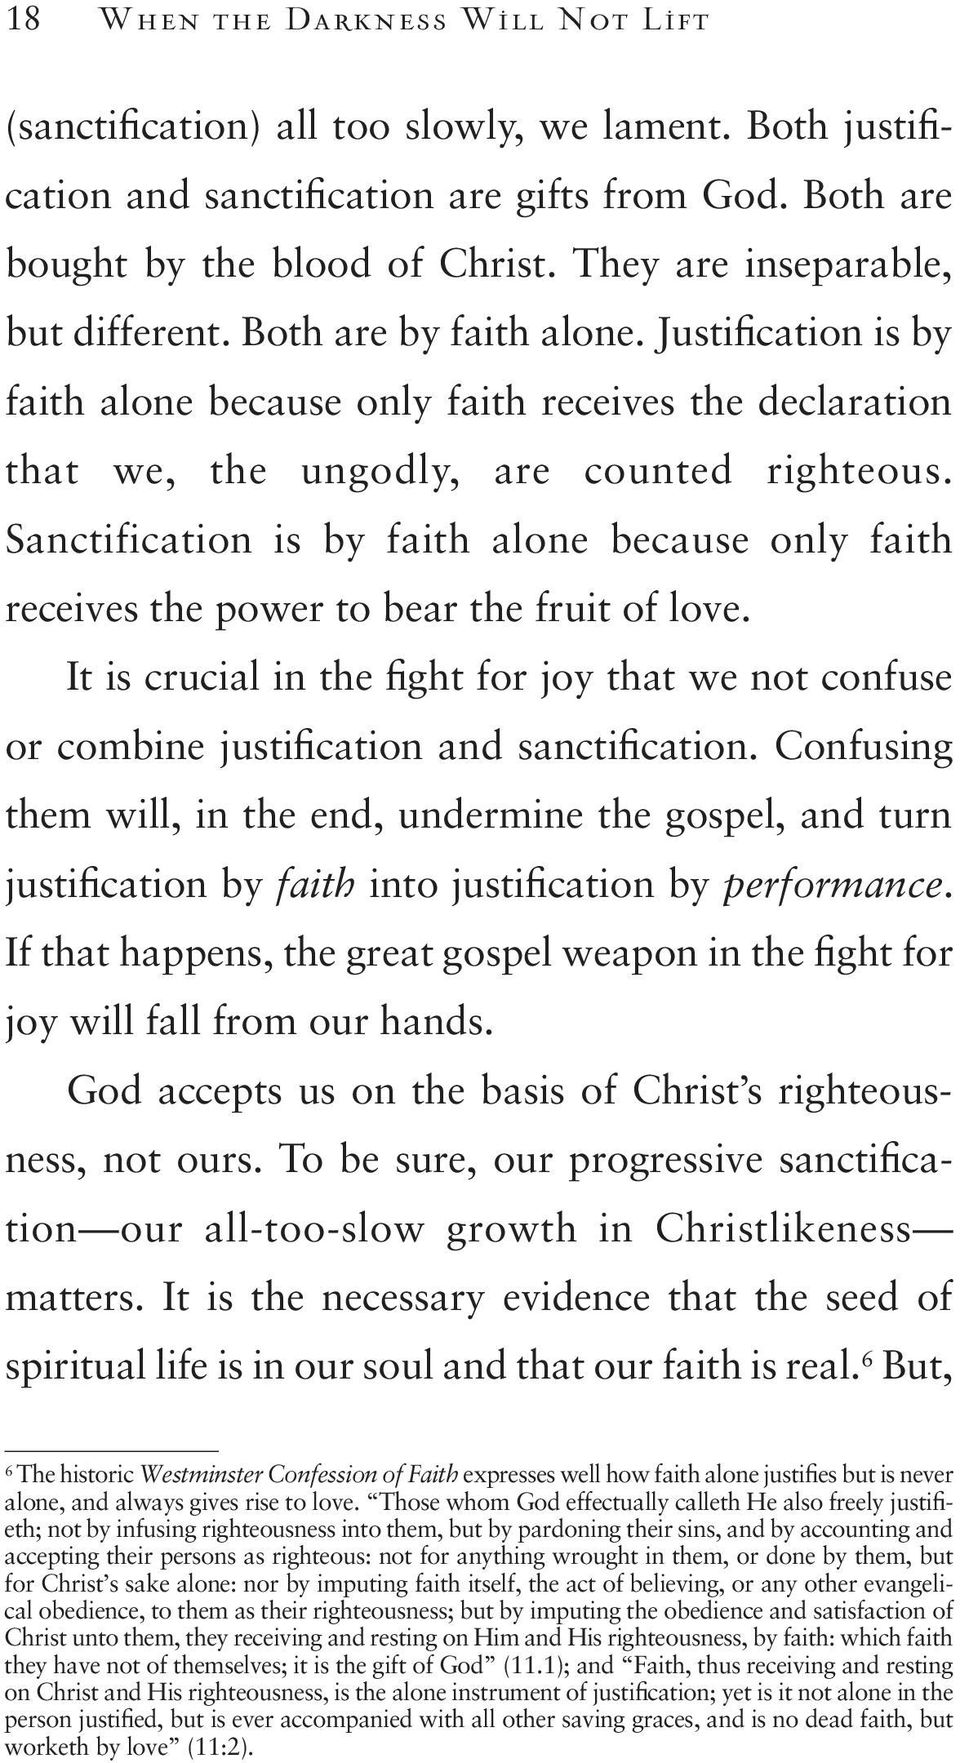 Sanctification is by faith alone because only faith receives the power to bear the fruit of love. It is crucial in the fight for joy that we not confuse or combine justification and sanctification.